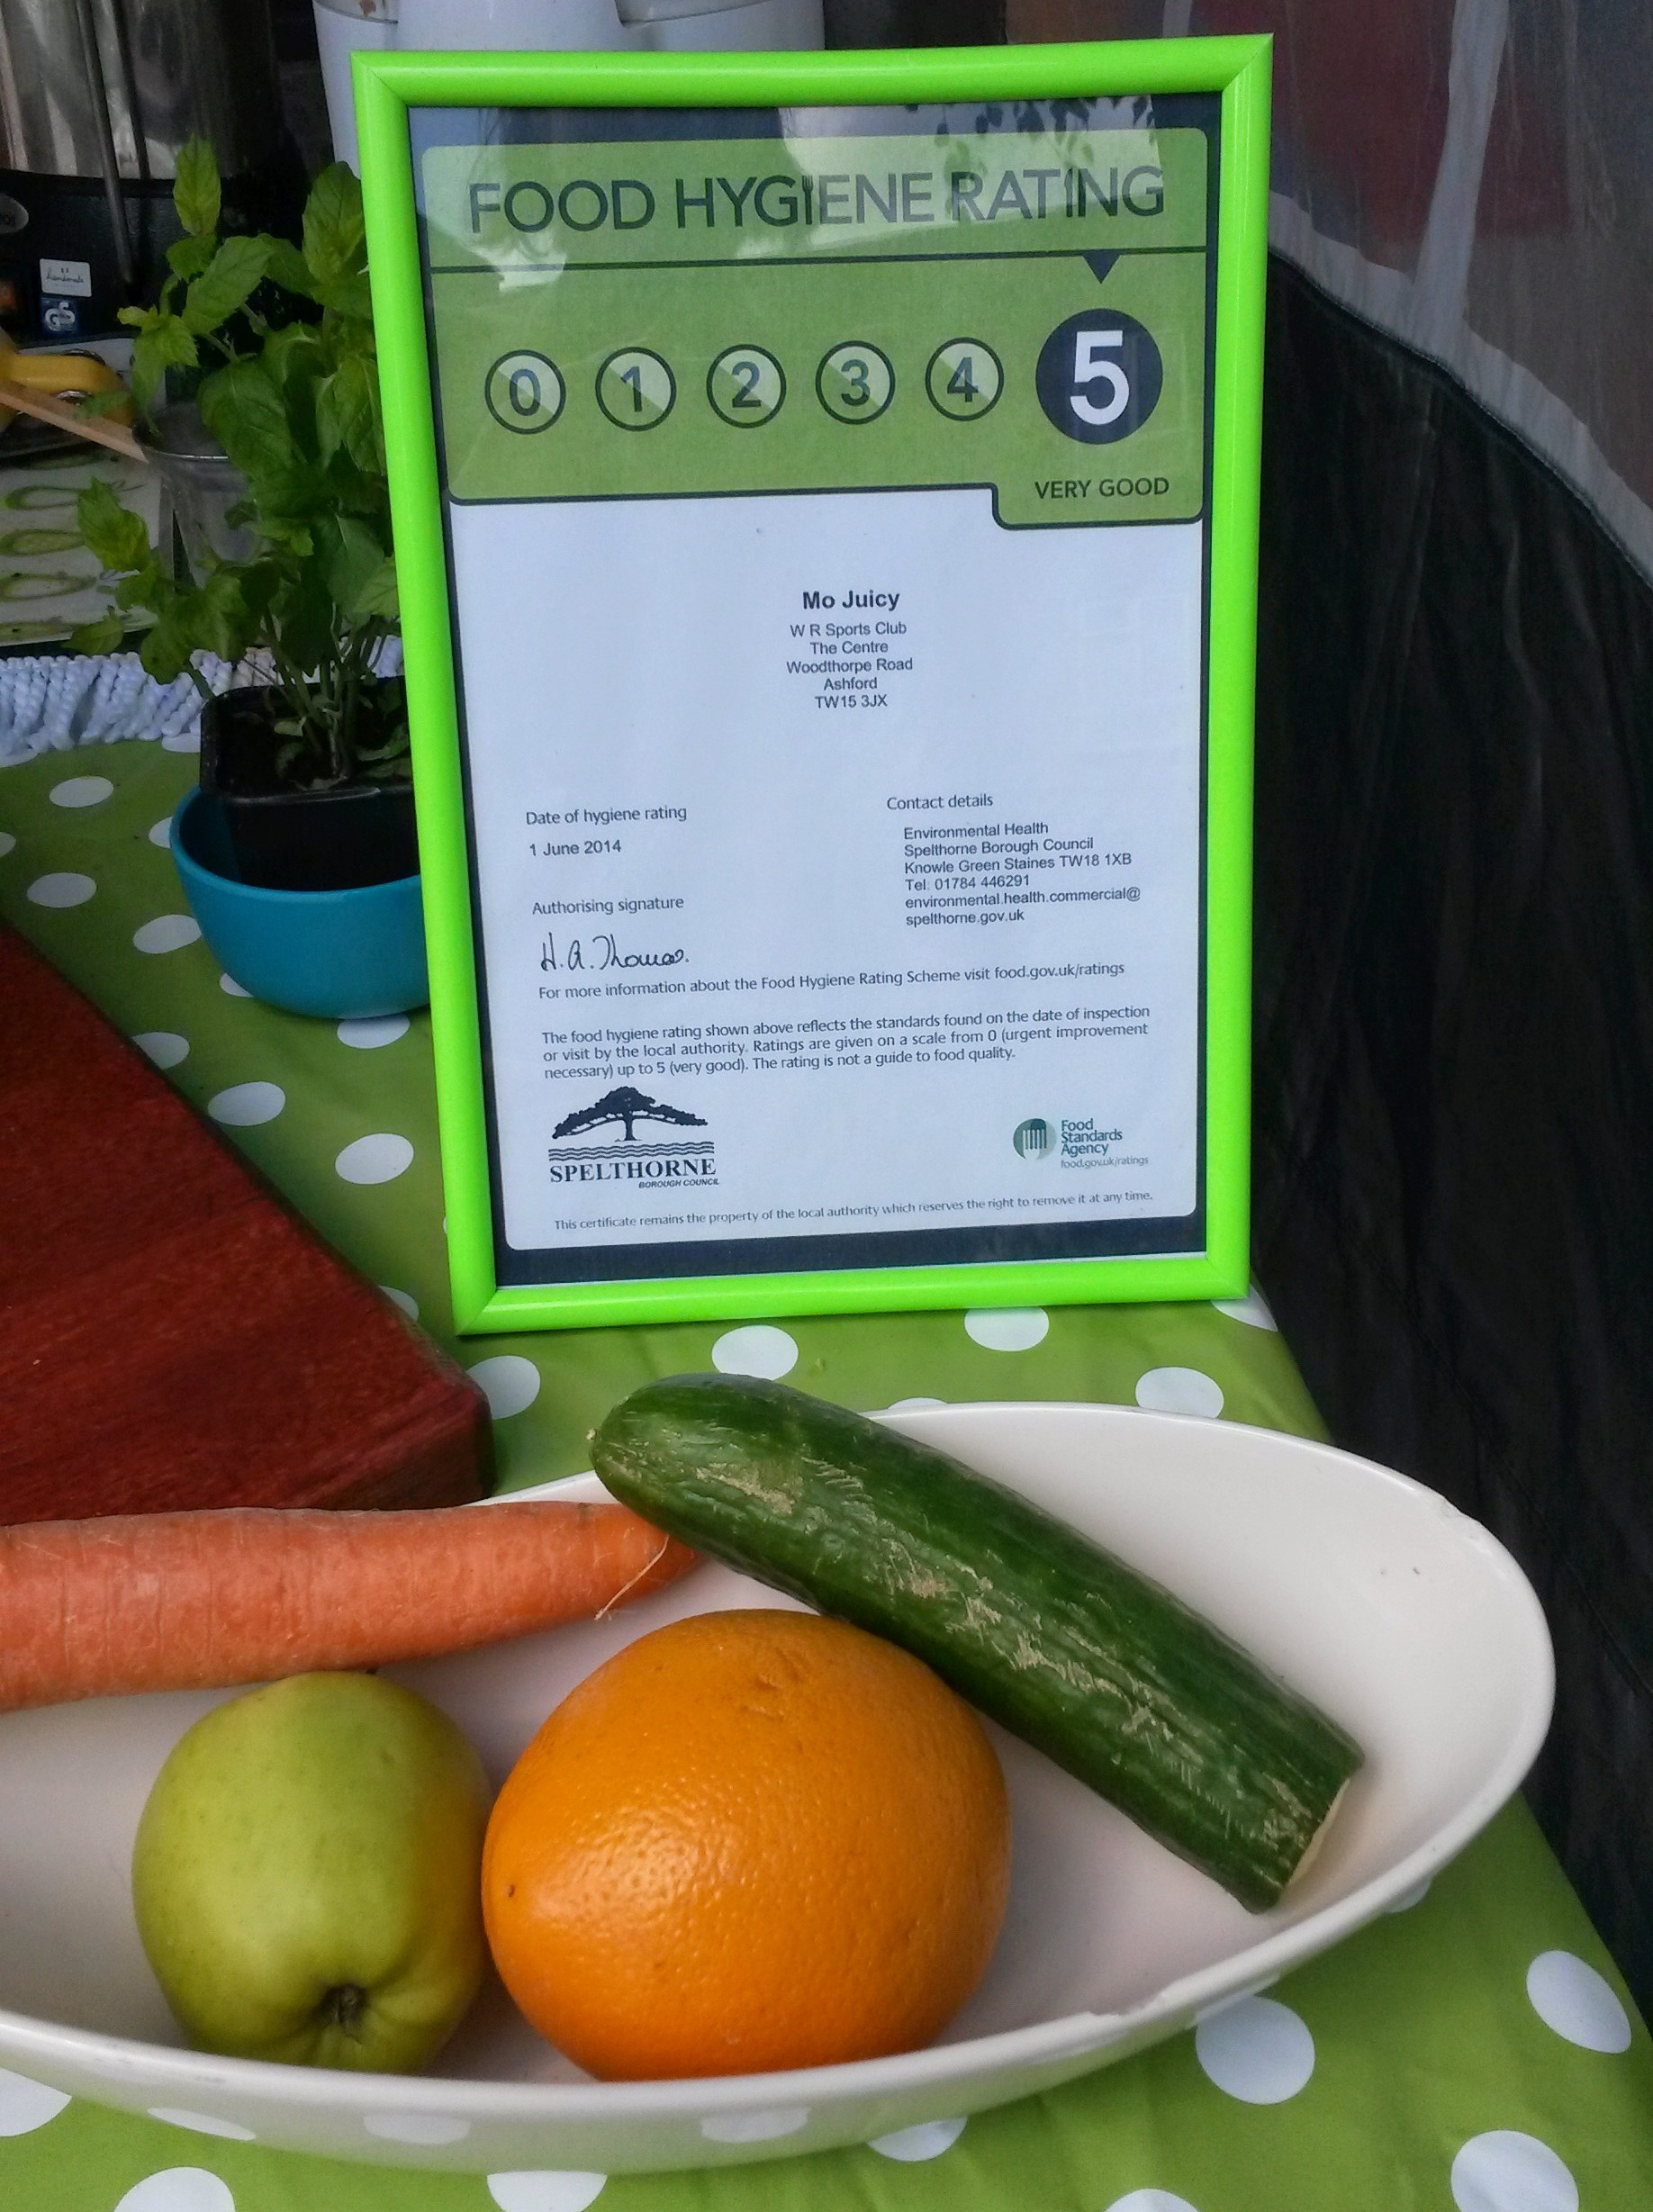 Mo Juicy mobile juice bar has been awarded 5 stars by Spelthorne Council for the Food Hygiene Rating Scheme.